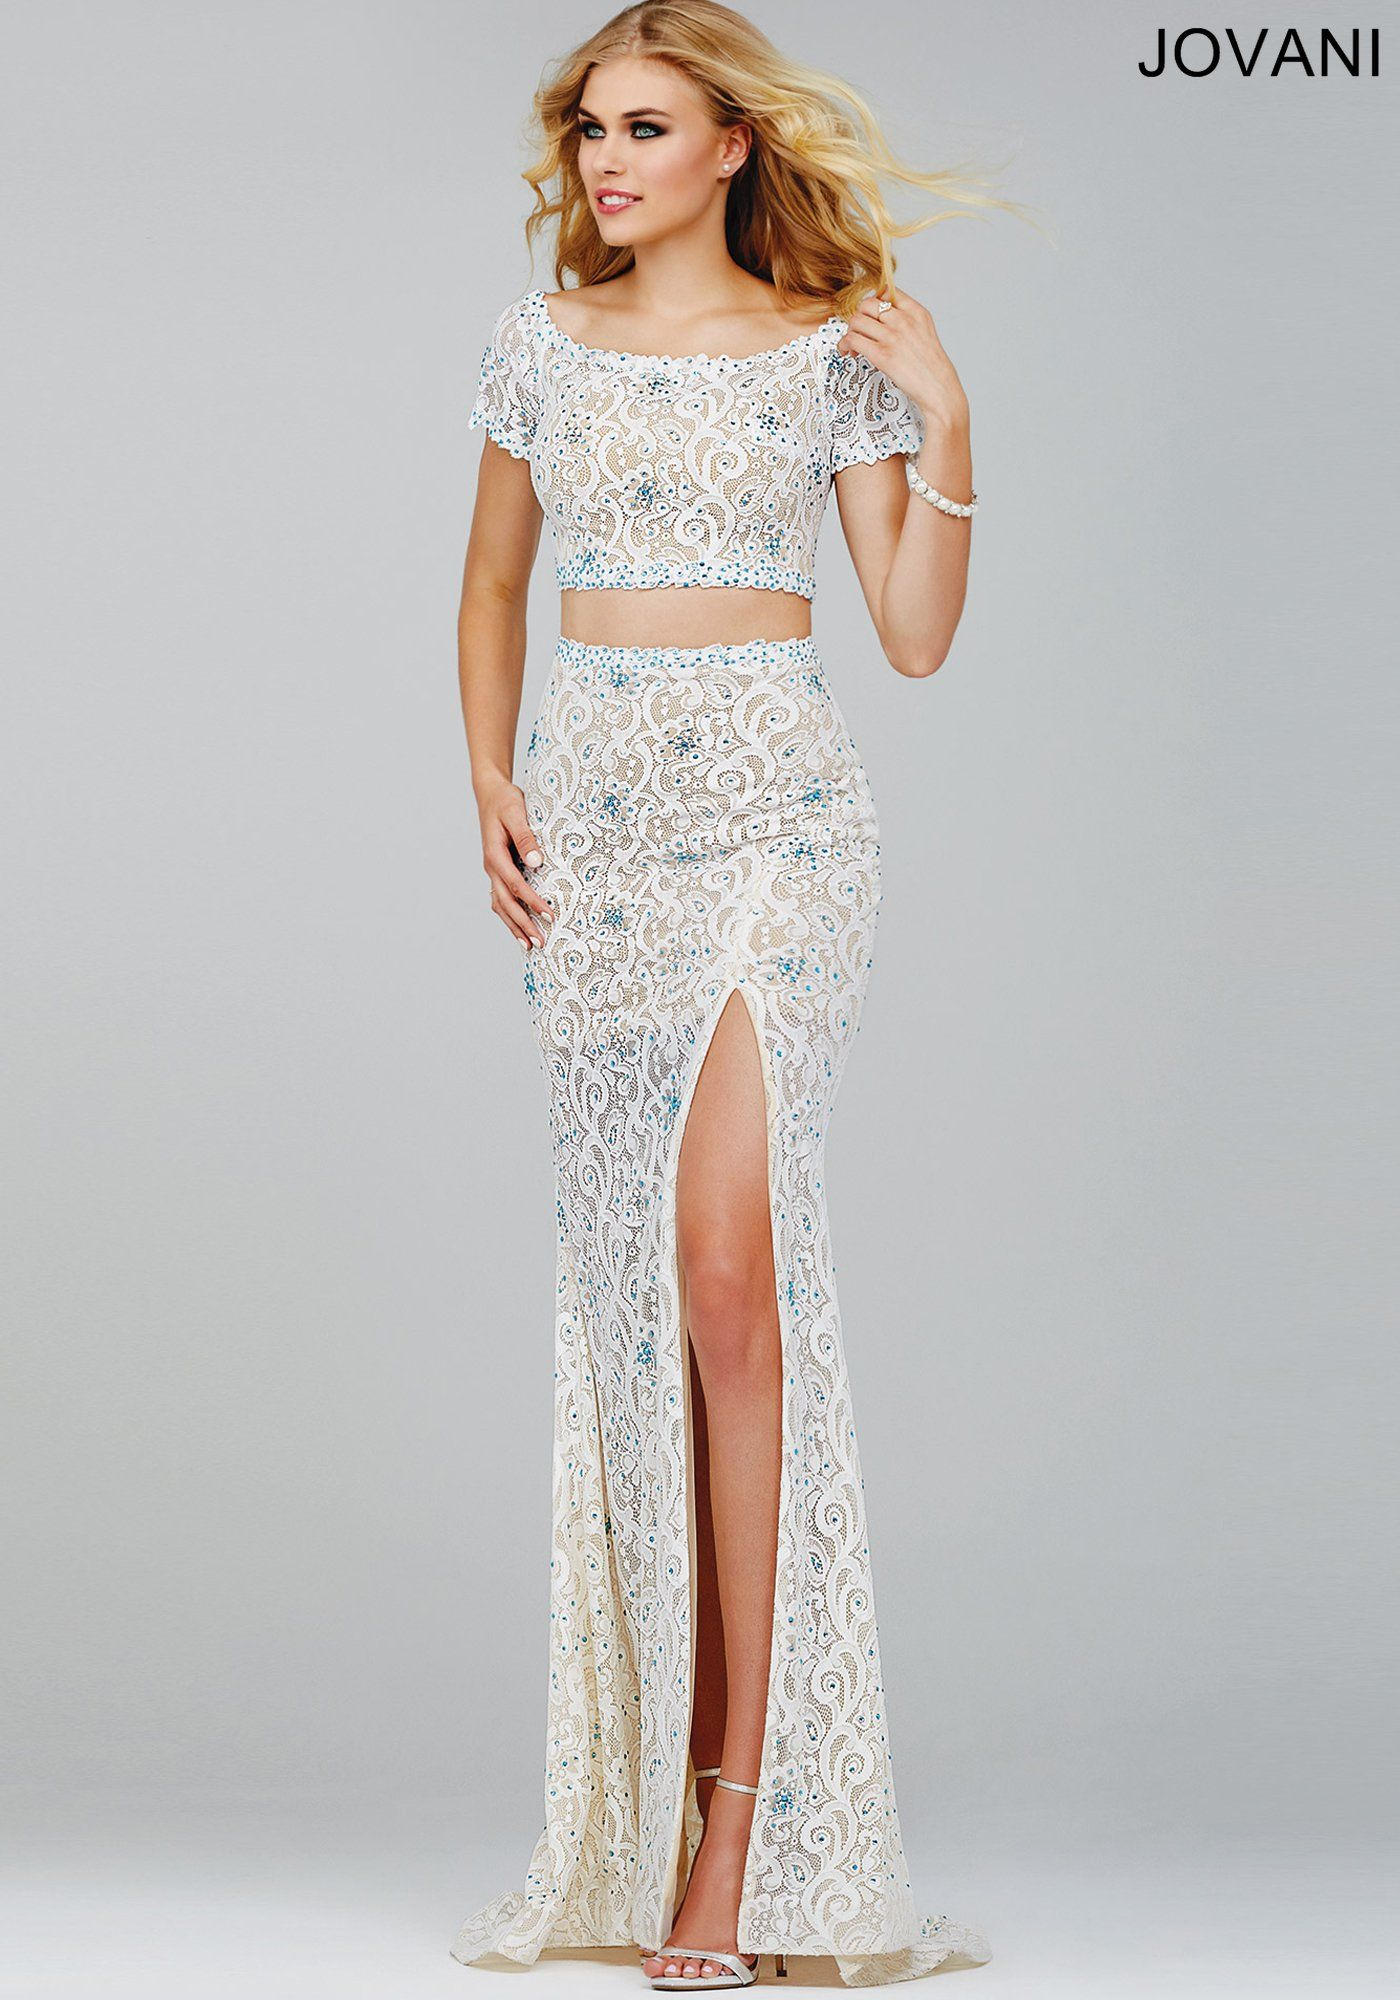 Off White/Nude Lace Two-Piece Prom Dress 27042 | Cool stuff to buy ...